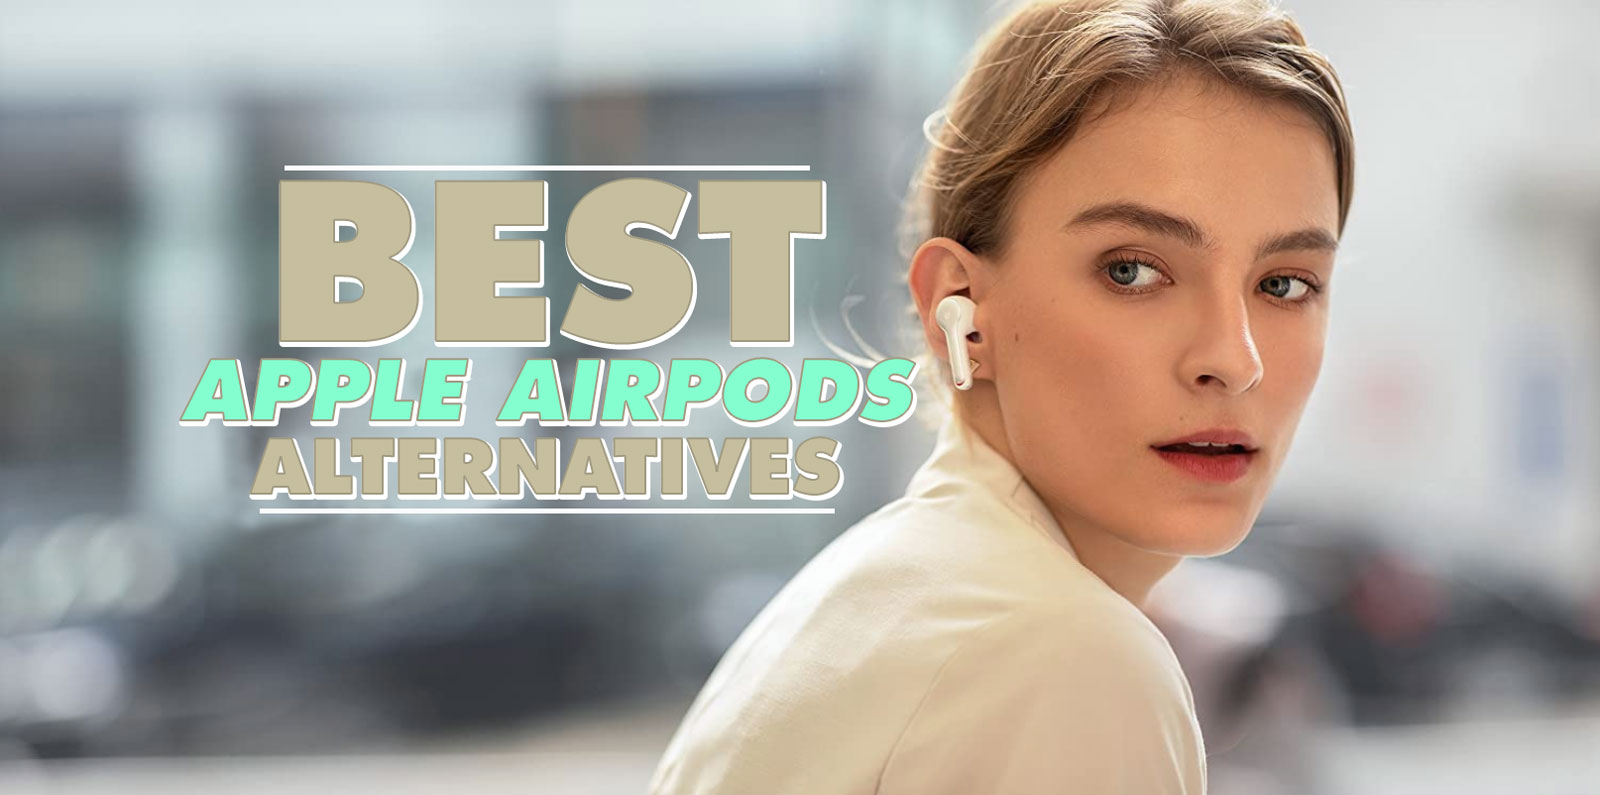 Best Apple AirPods Alternatives 2020 | Anker Soundcore VS AirPods